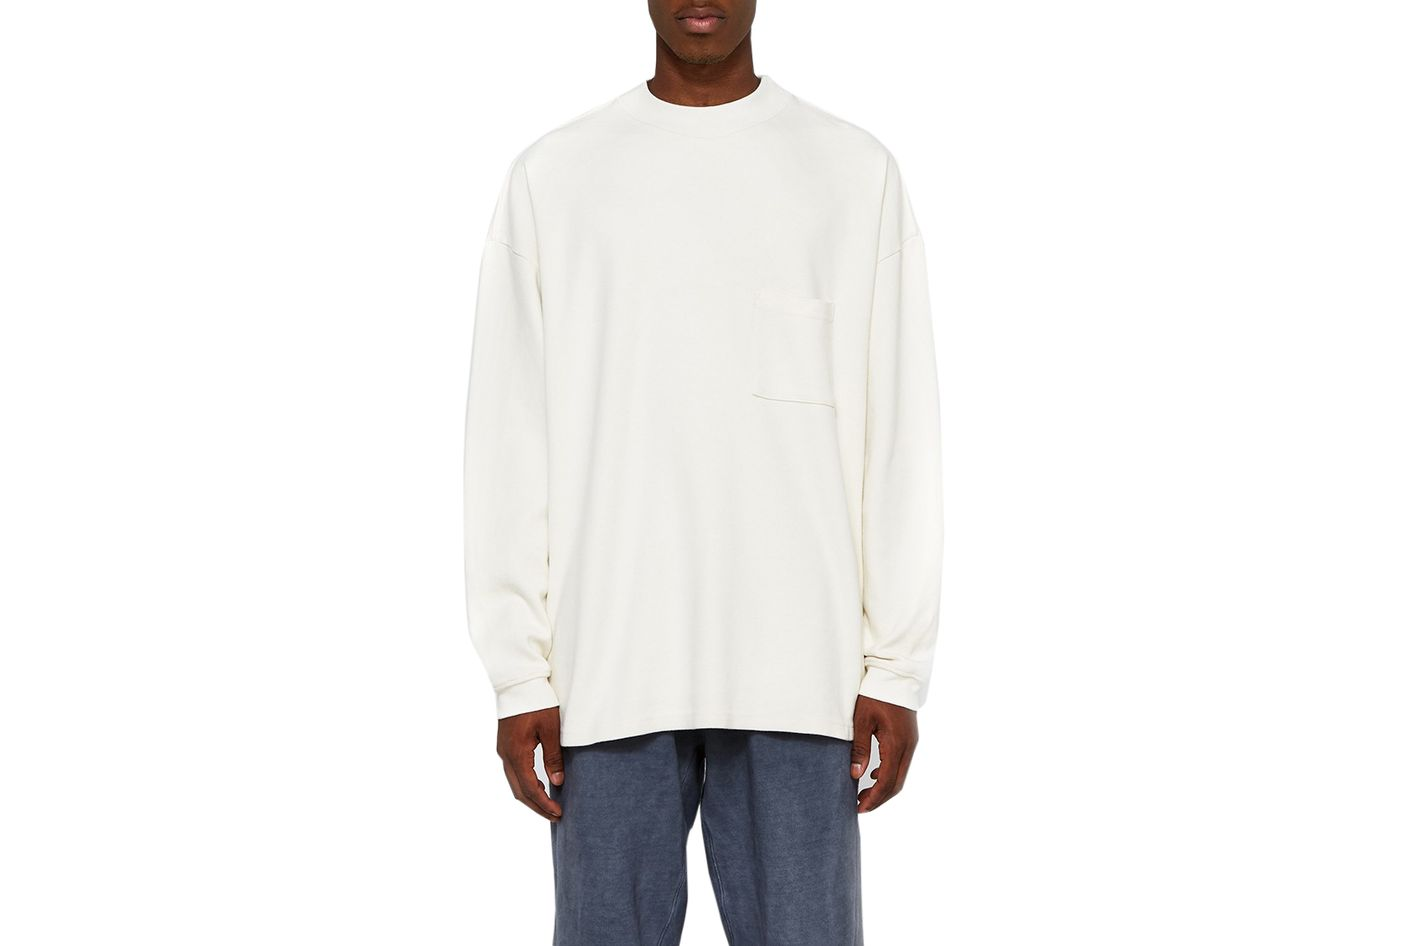 Yeezy Long Sleeve Tee With Pocket